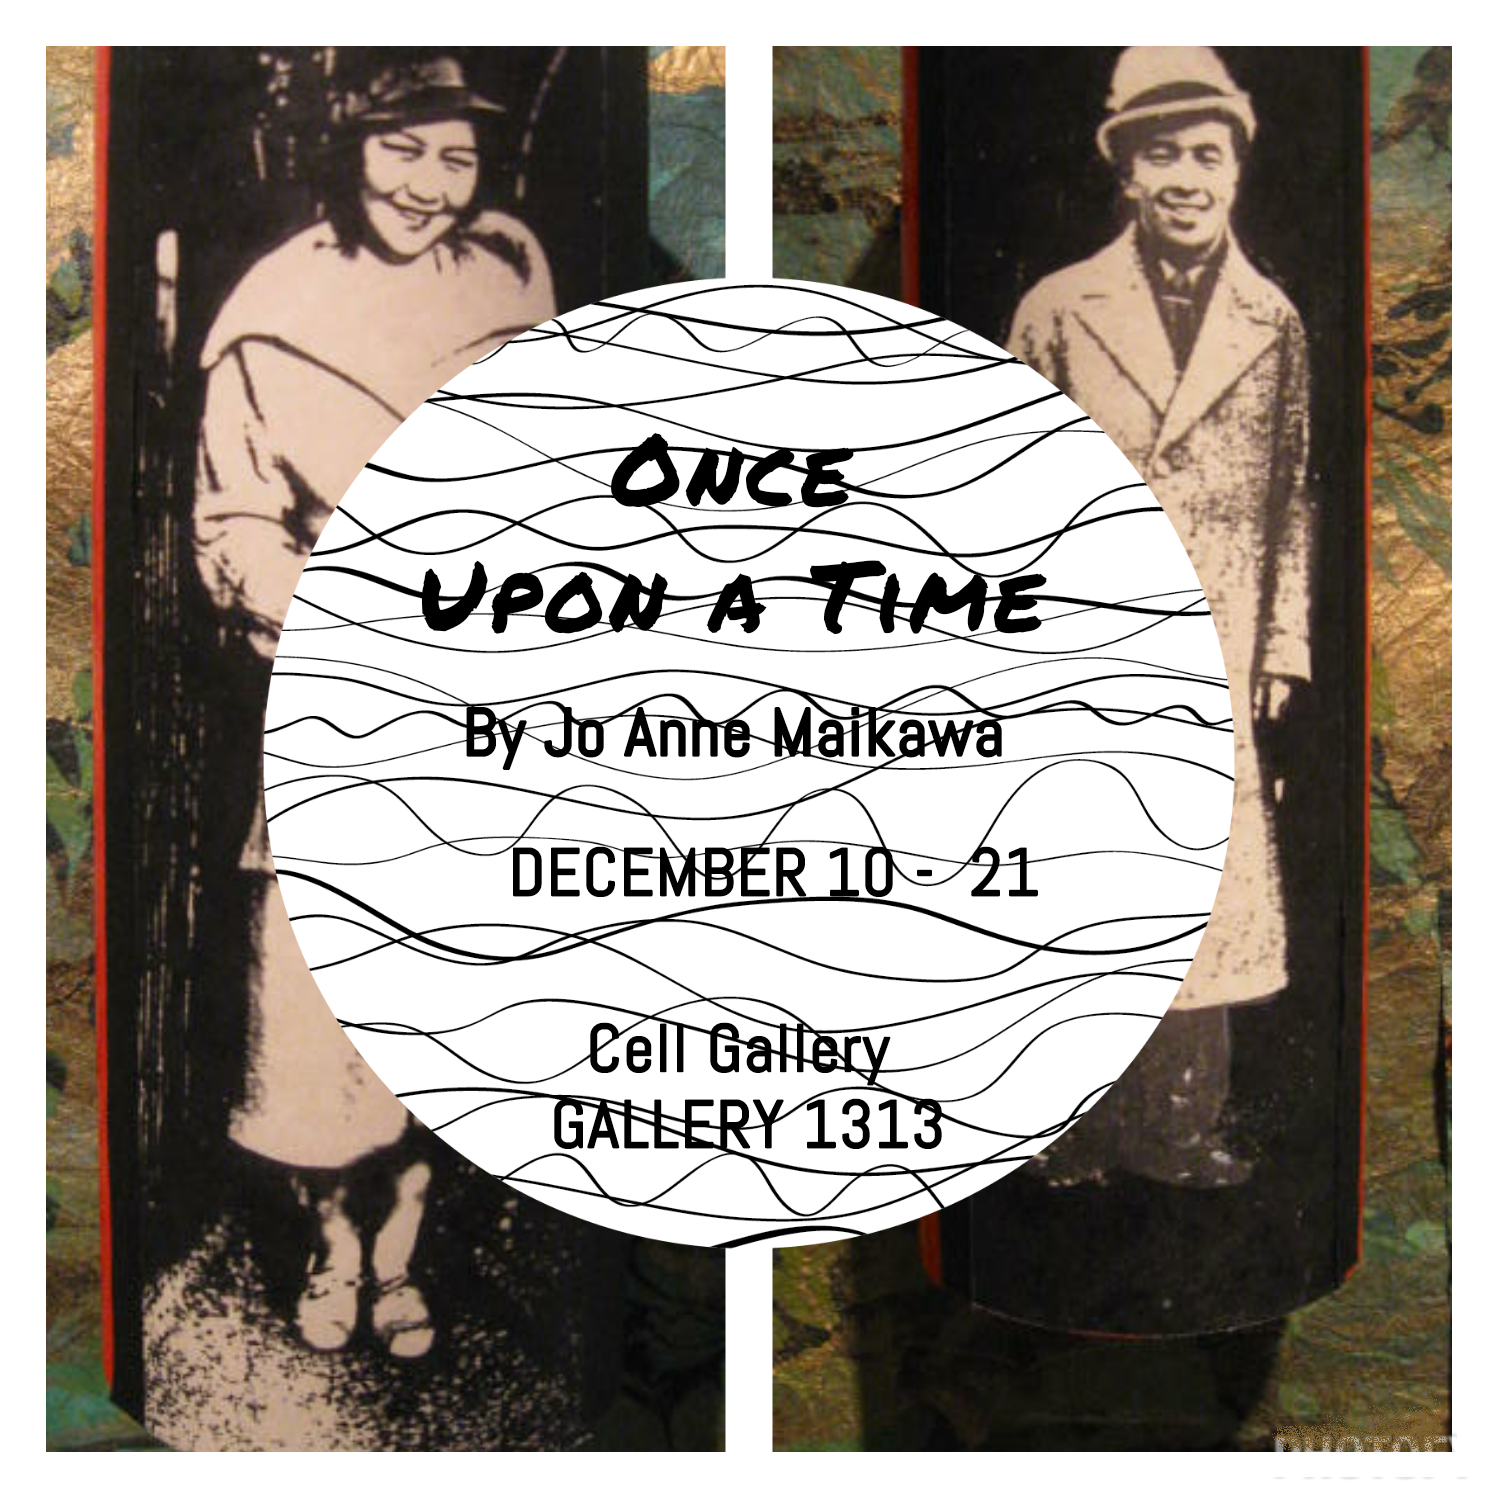 ONCE UPON A TIME by Jo Anne Maikawa, December 10-21st 2014, Cell Gallery